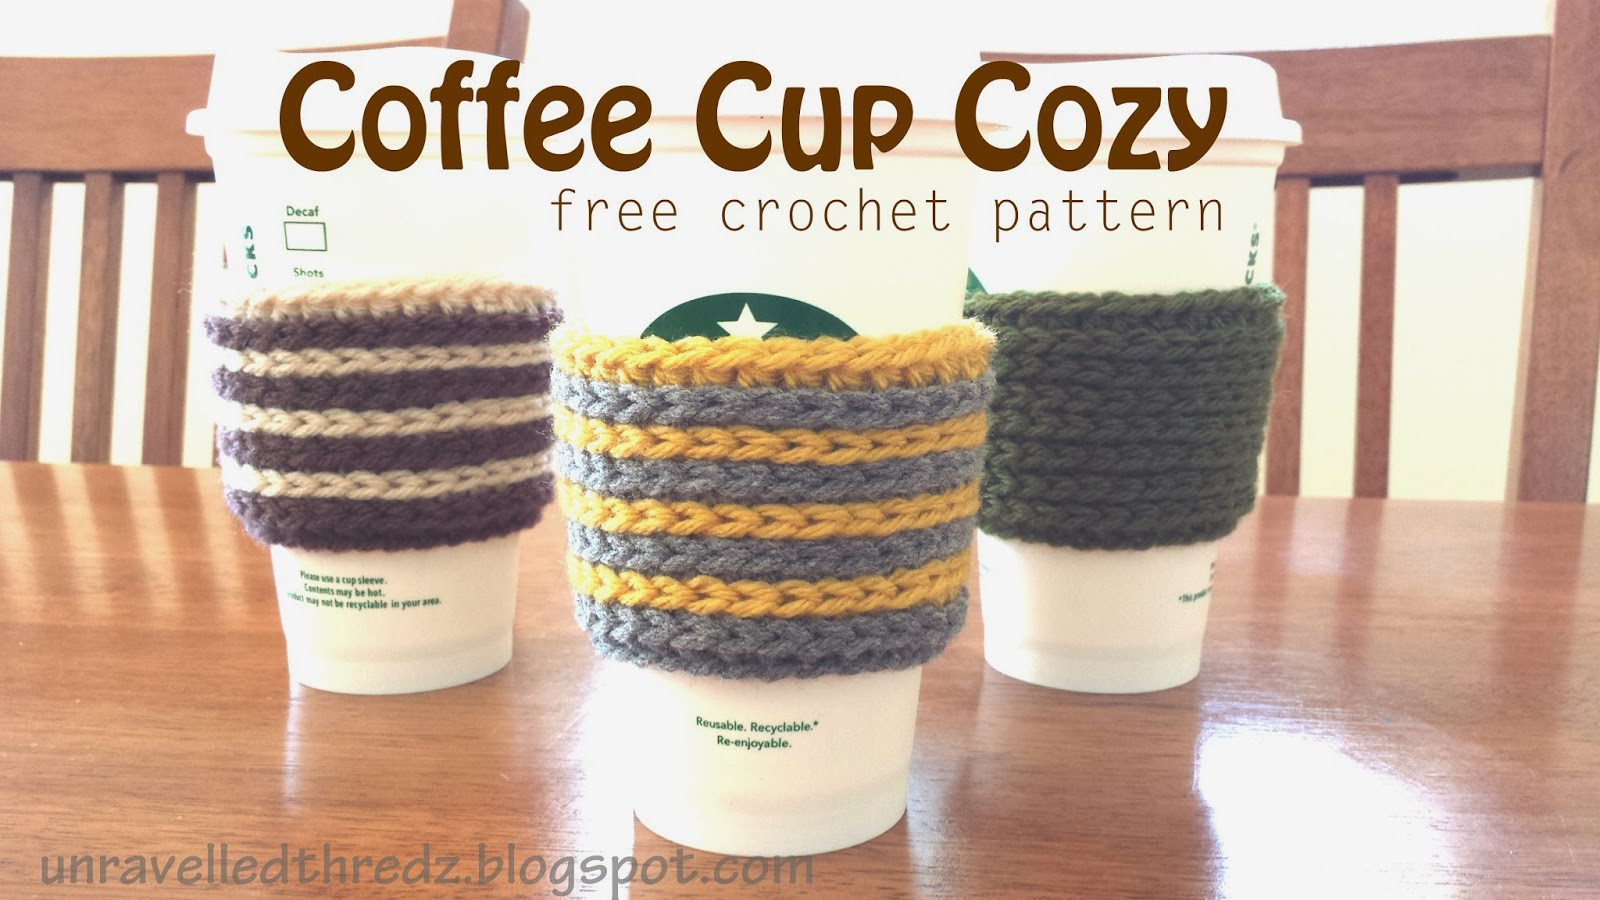 Crochet Coffee Cup Cozy Inspirational Crochet Class Beginning Crochet Sparkleez Crystles Of Crochet Coffee Cup Cozy Unique Mrsbrits Ribbed Coffee Cozy Crochet Pattern